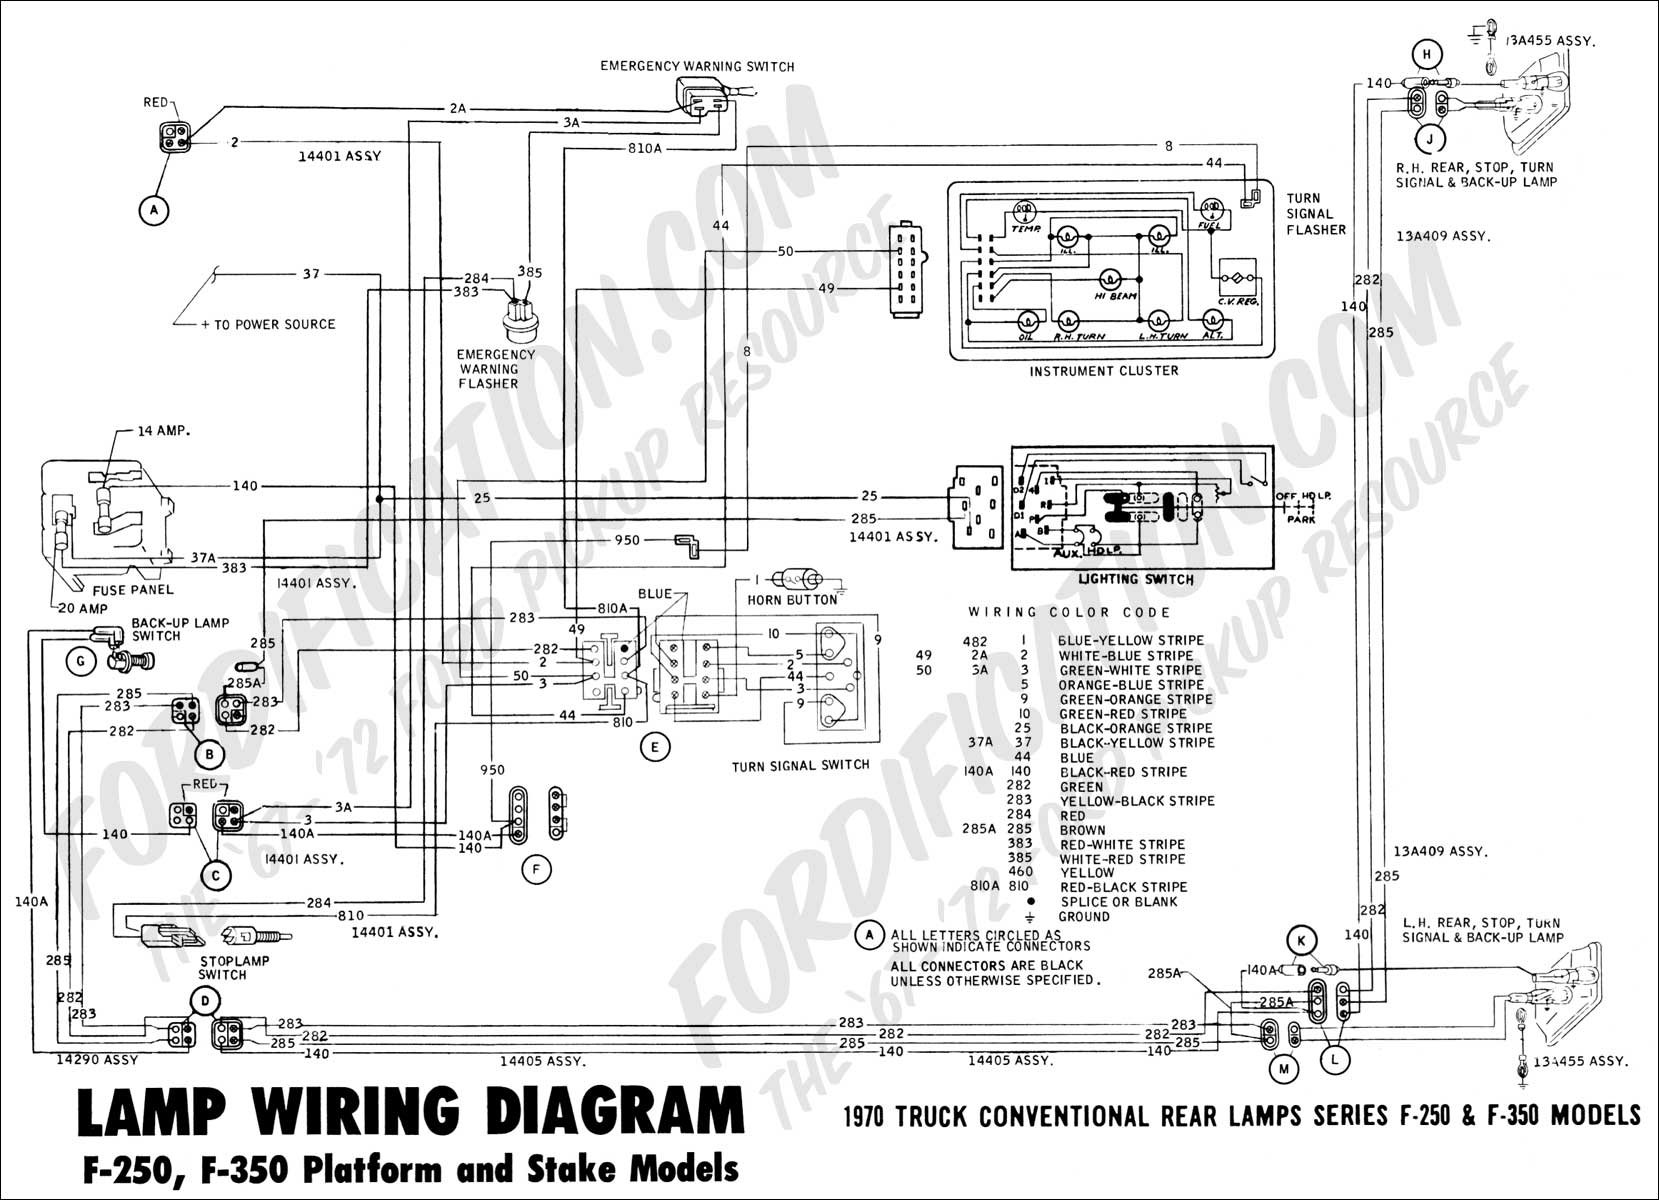 Electronic Ignition Wiring Diagram 1994 Ford Bronco 2 Reverse Light 1988 Blog Truck Technical Drawings And Schematics Section H 1985